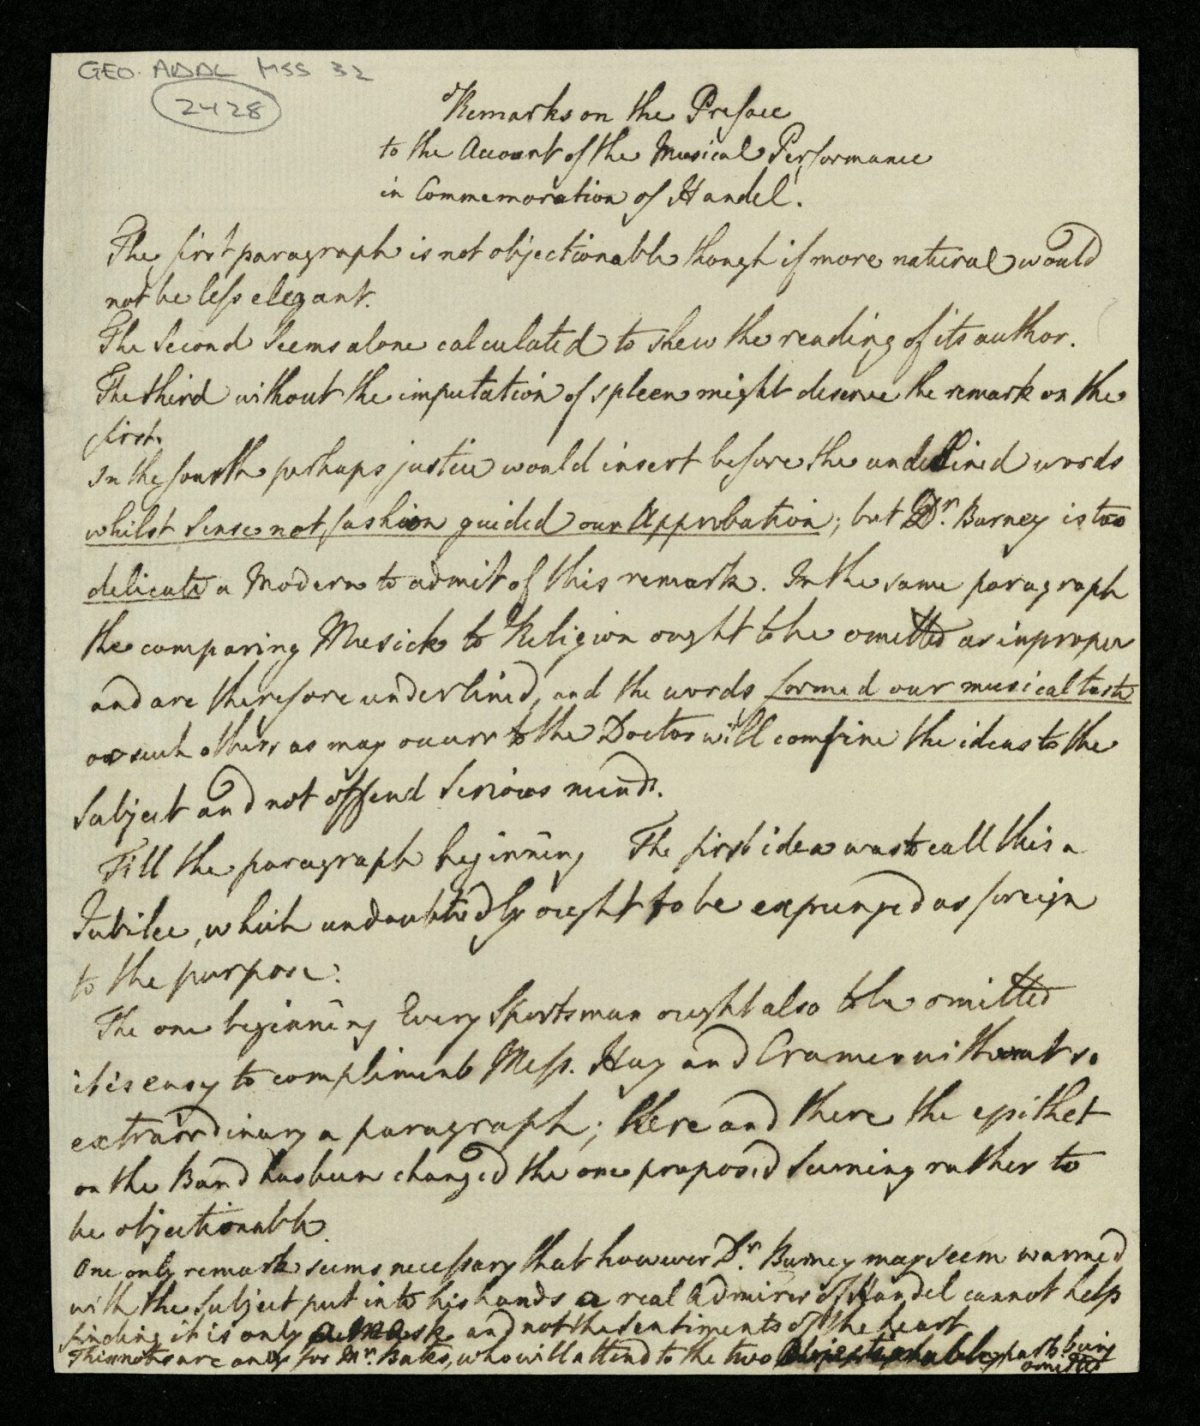 Remarks on the Preface to the Account of the Musical Performance in Commemoration of Handel' George III